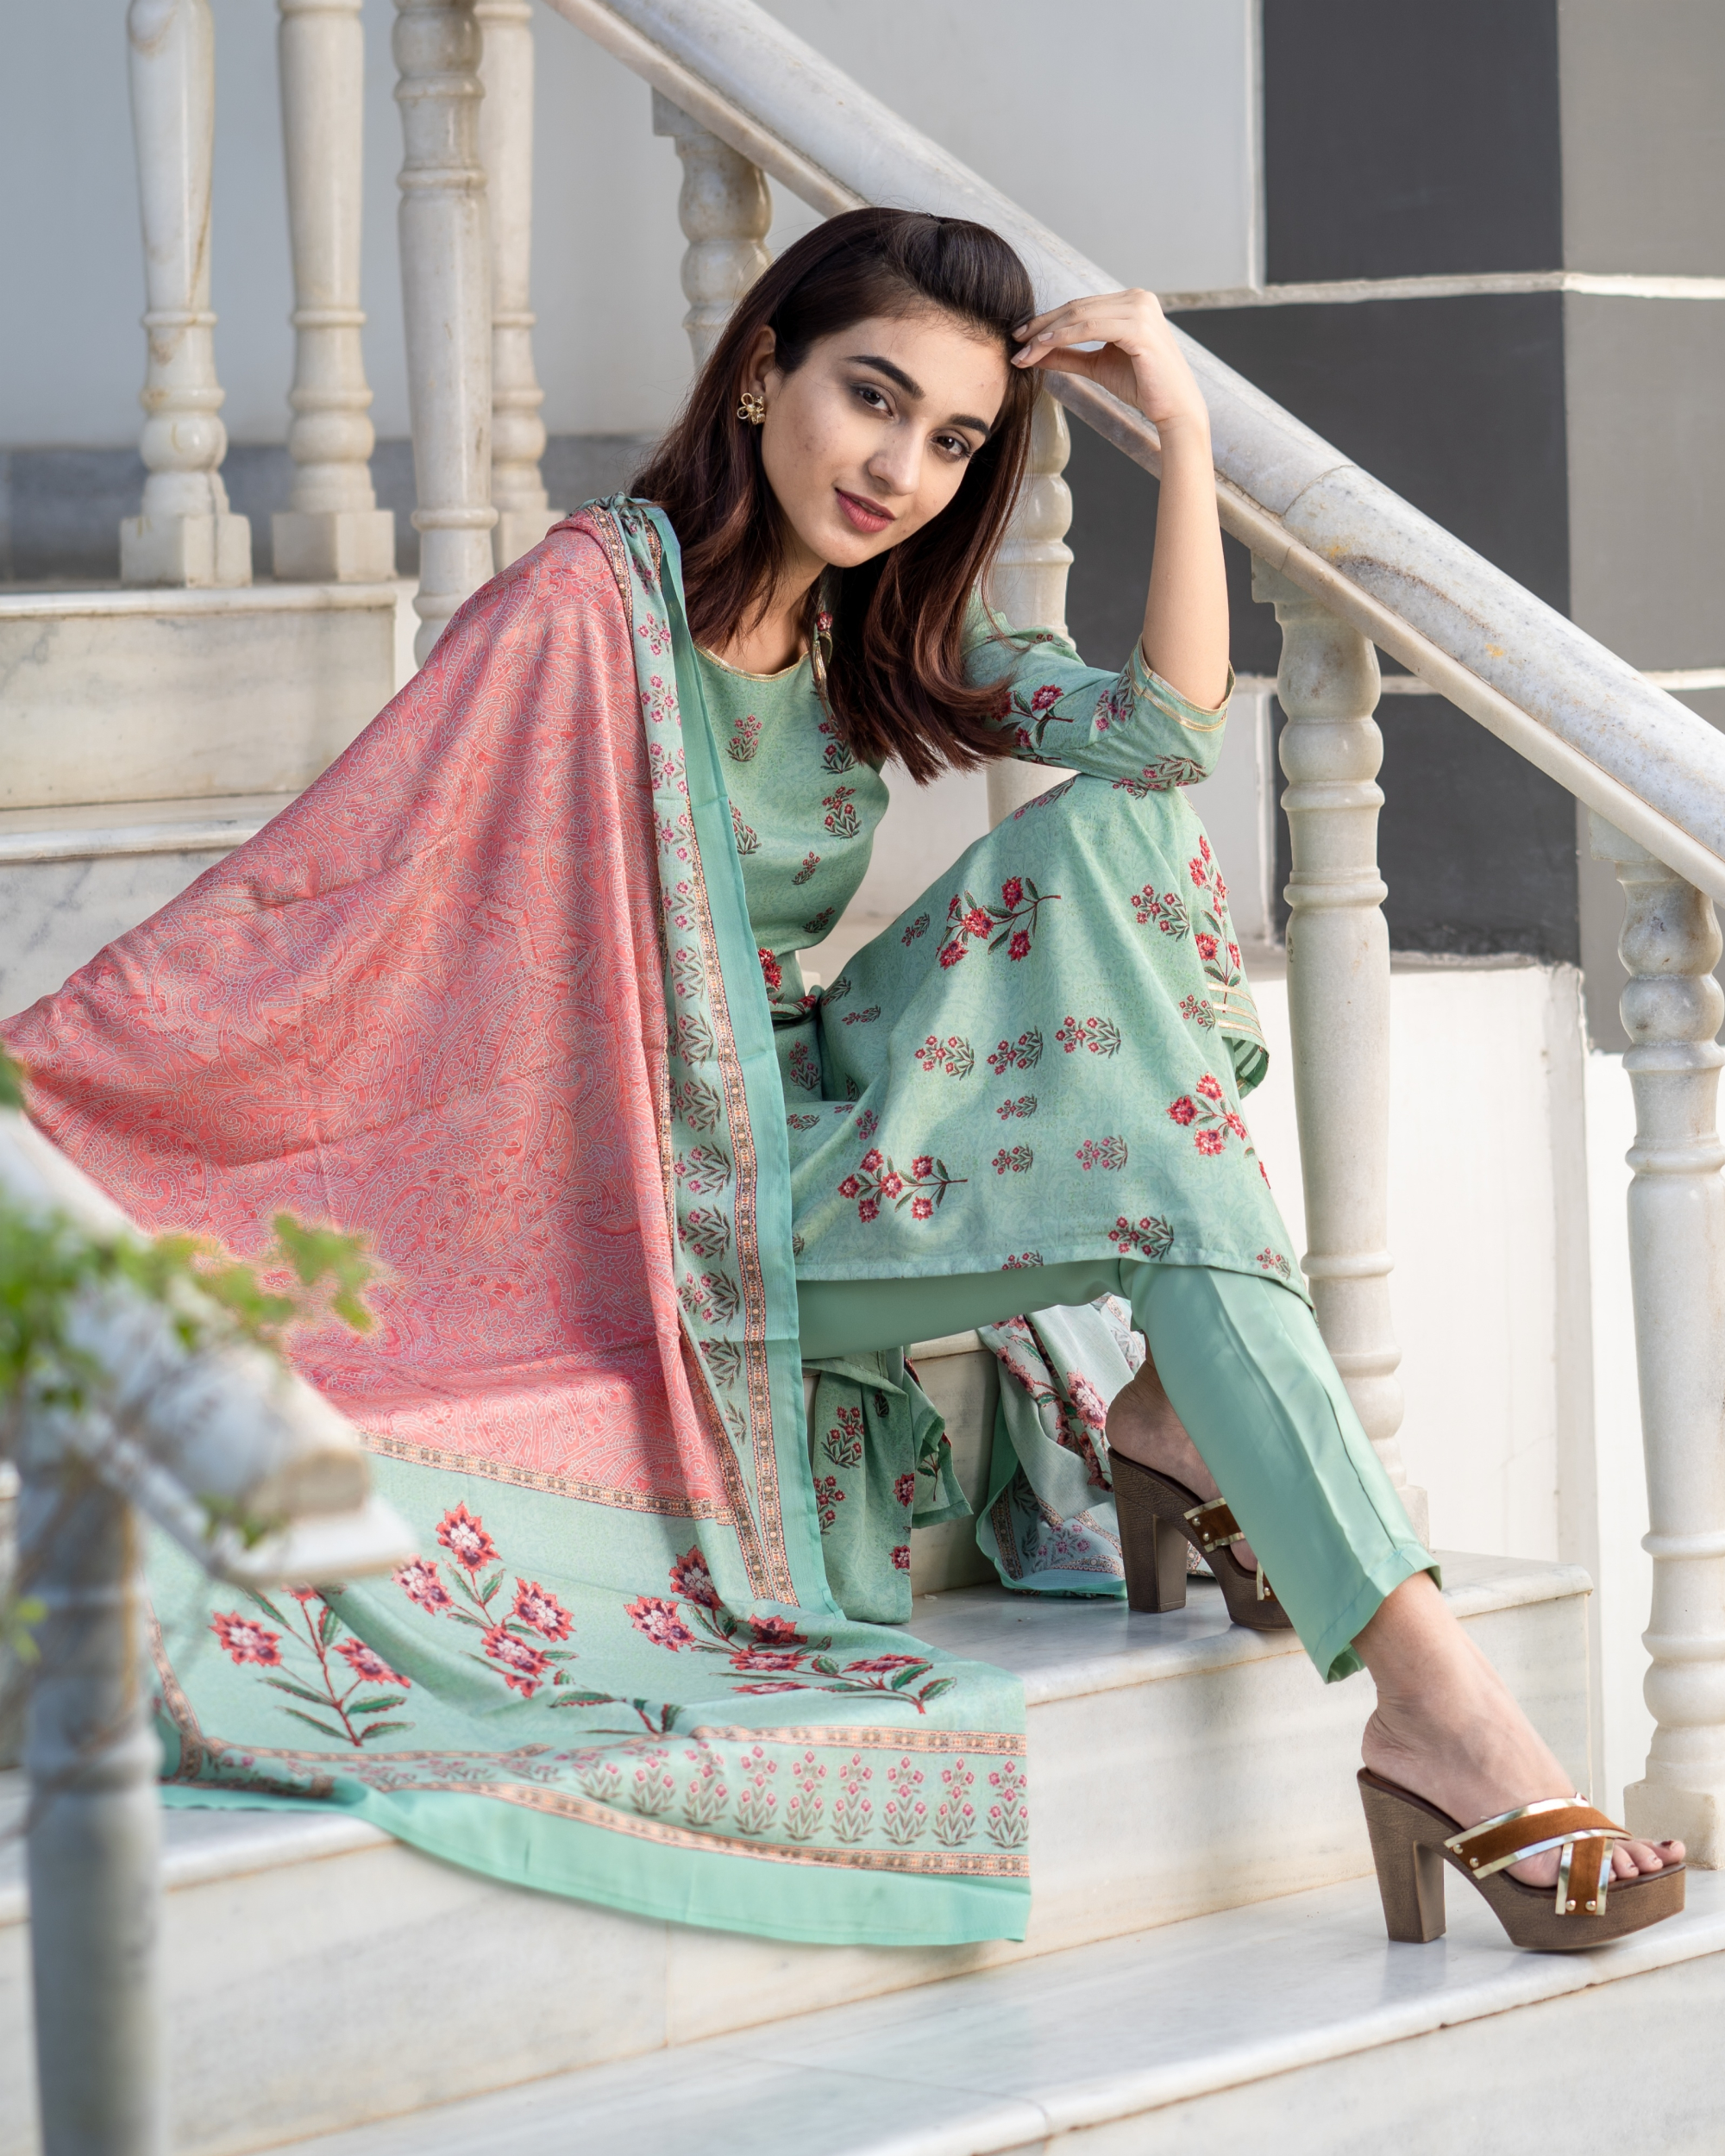 Pistachio Green Embroidered Suit Set with Pink Dupatta - Set of Three